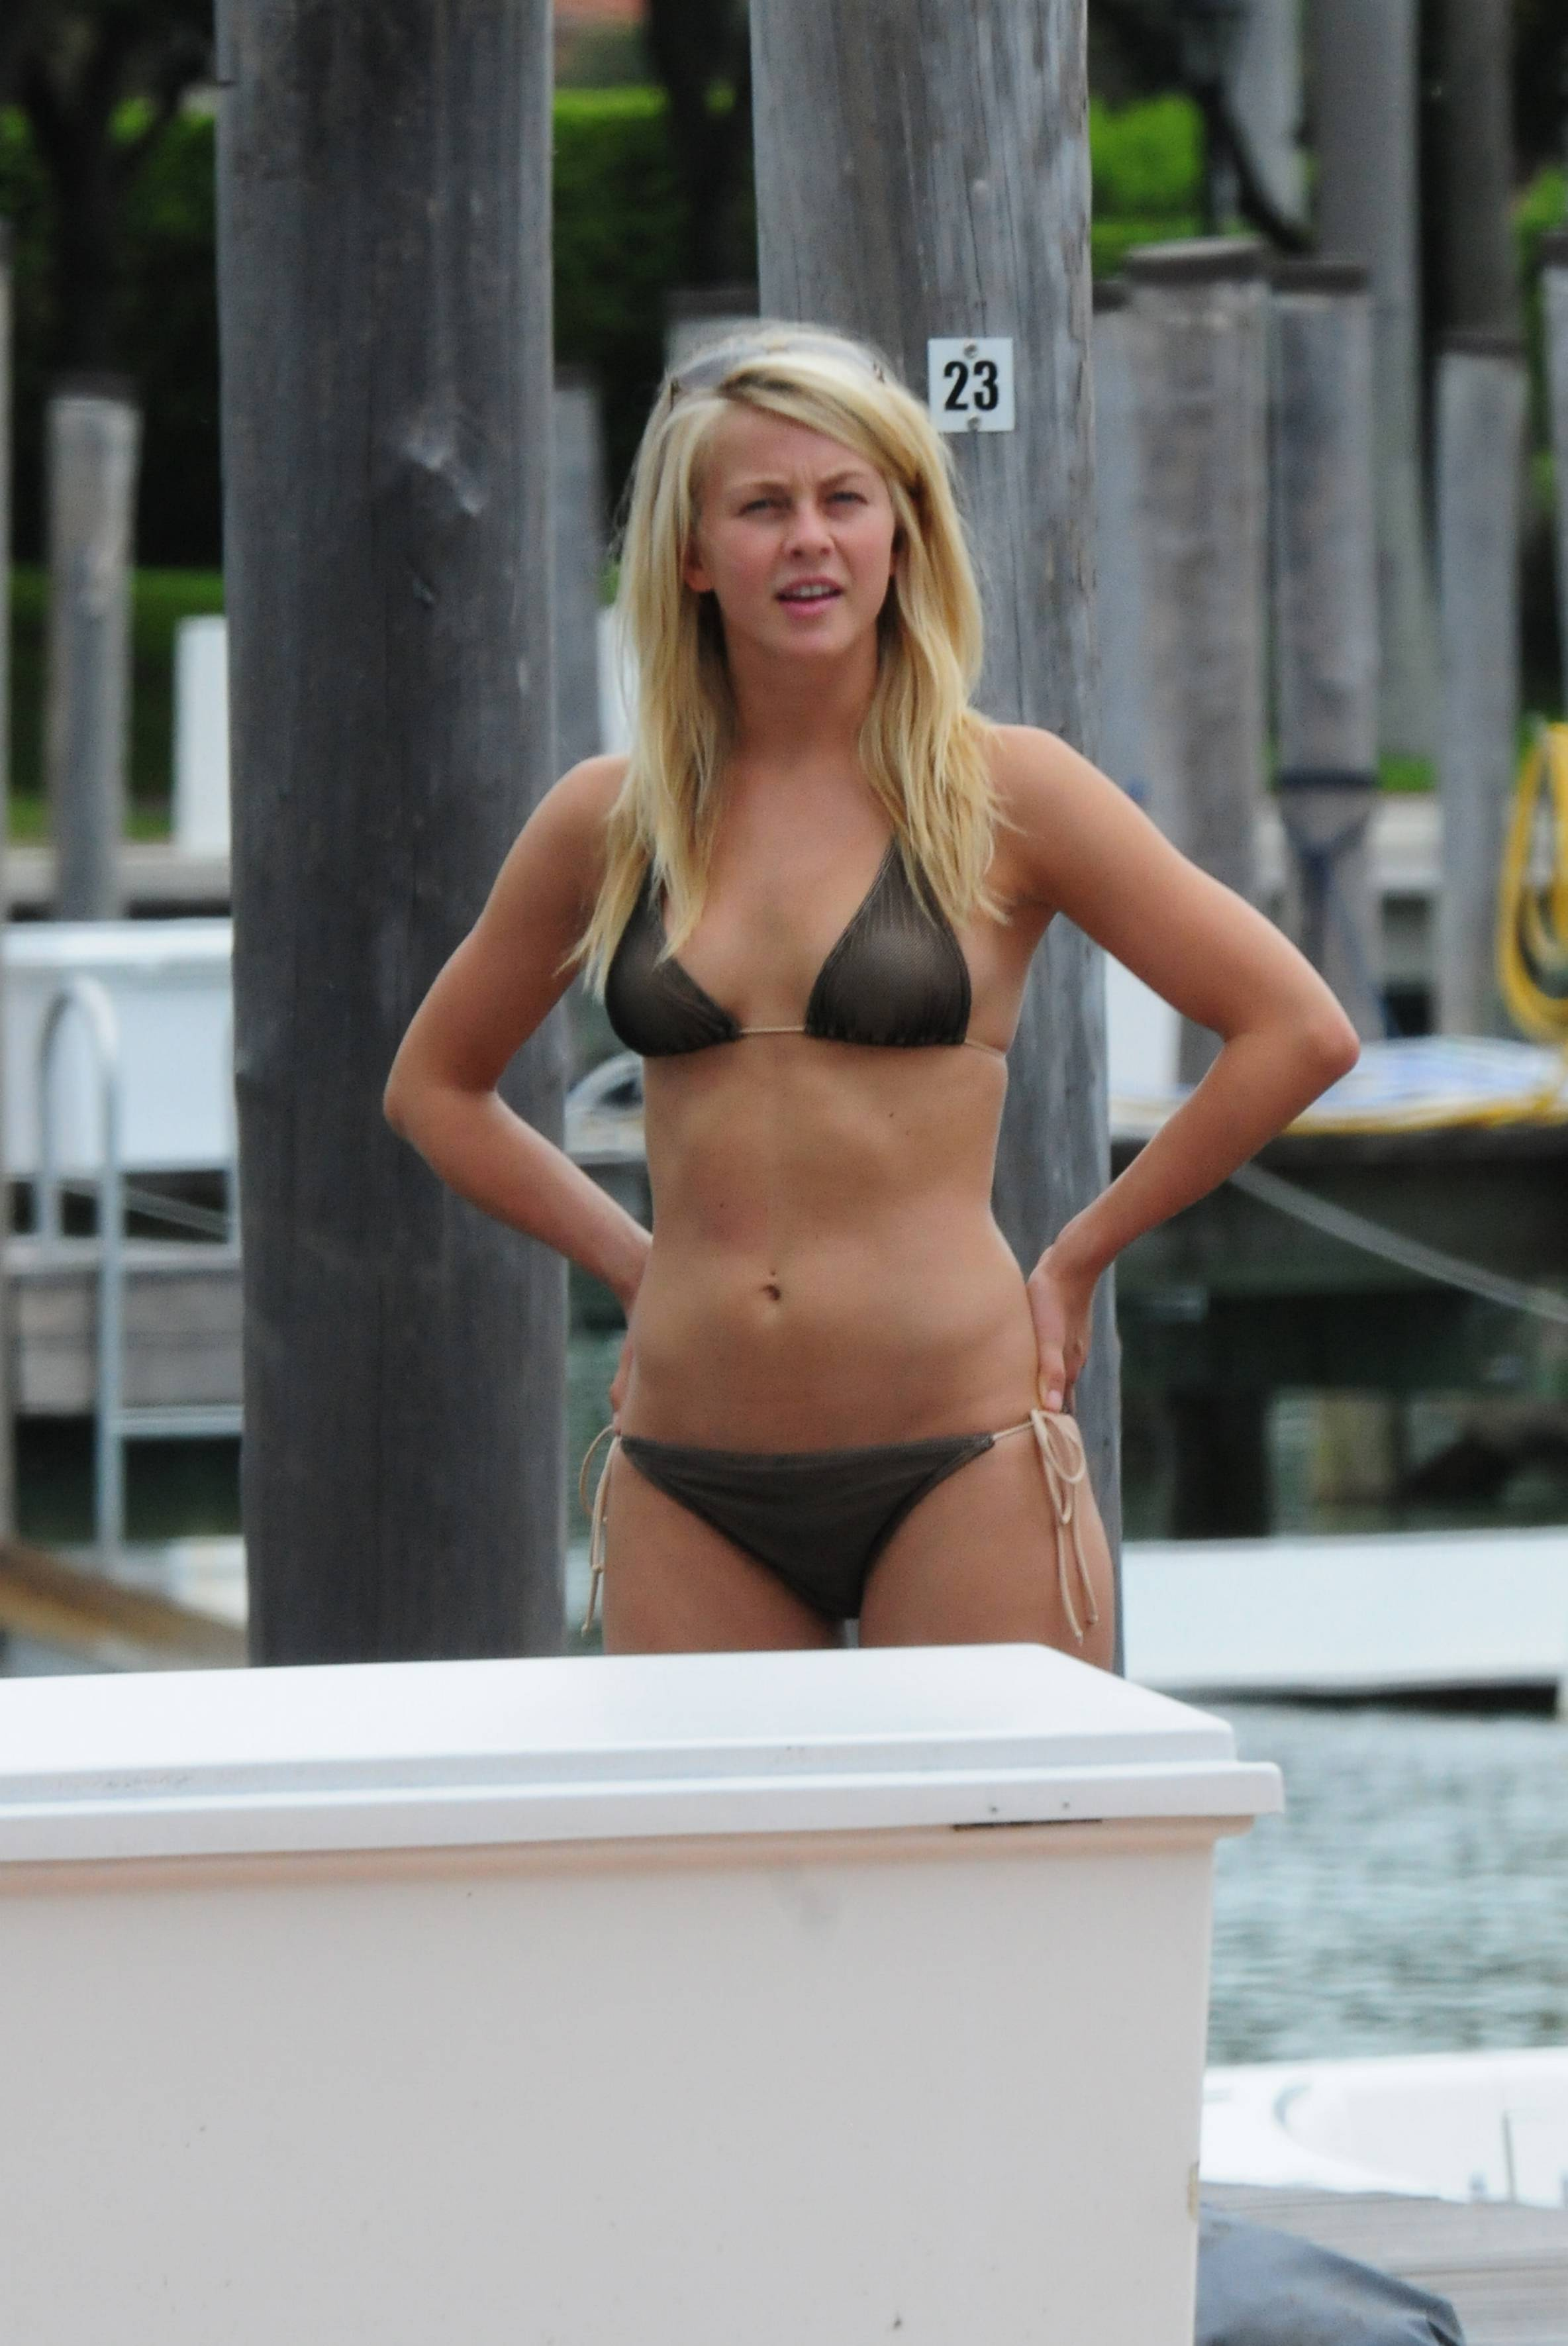 Julianne hough sexy pics naked (87 pictures)